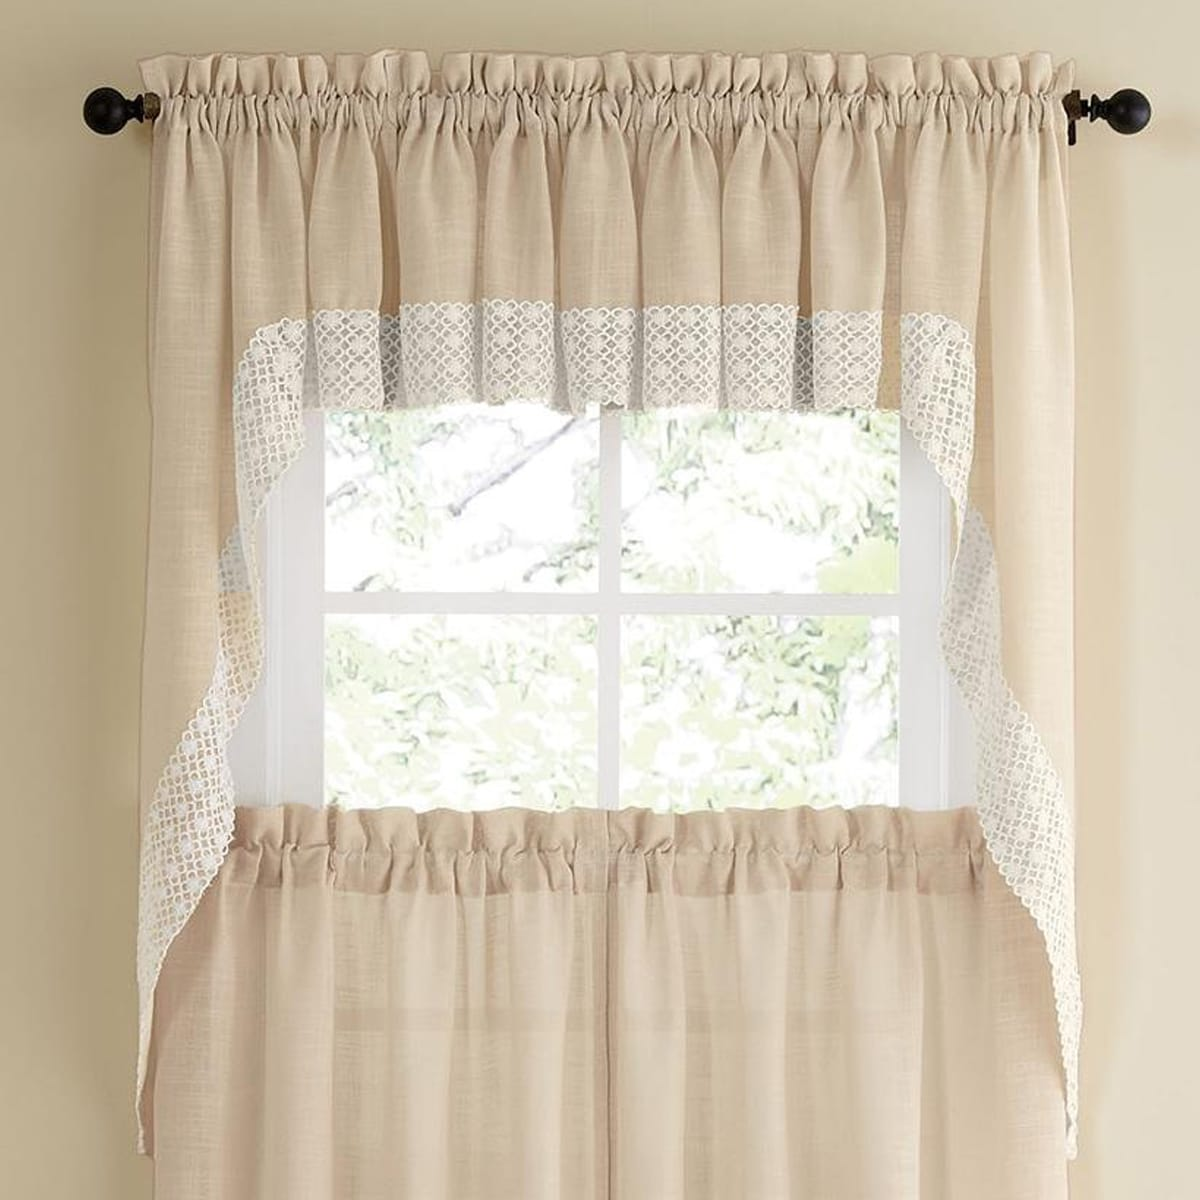 French Lace Curtains French Vanilla Country Style Curtain Parts With White Daisy Lace Accent Tier Swag And Valance Options